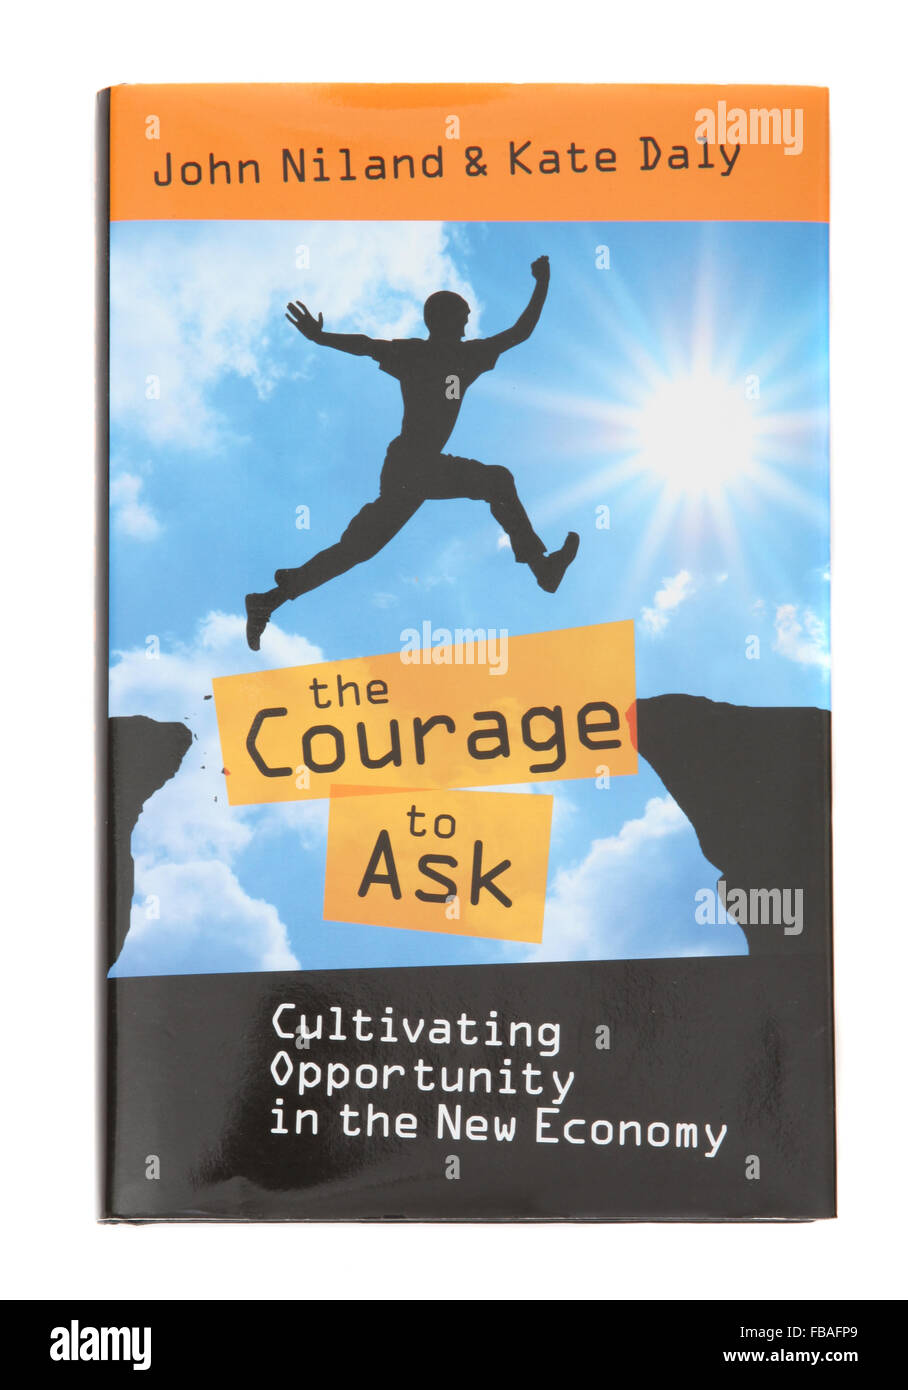 The book - The Courage to Ask - Cultivating Opportunity in the New Economy by John Niland and Kate Daly. - Stock Image